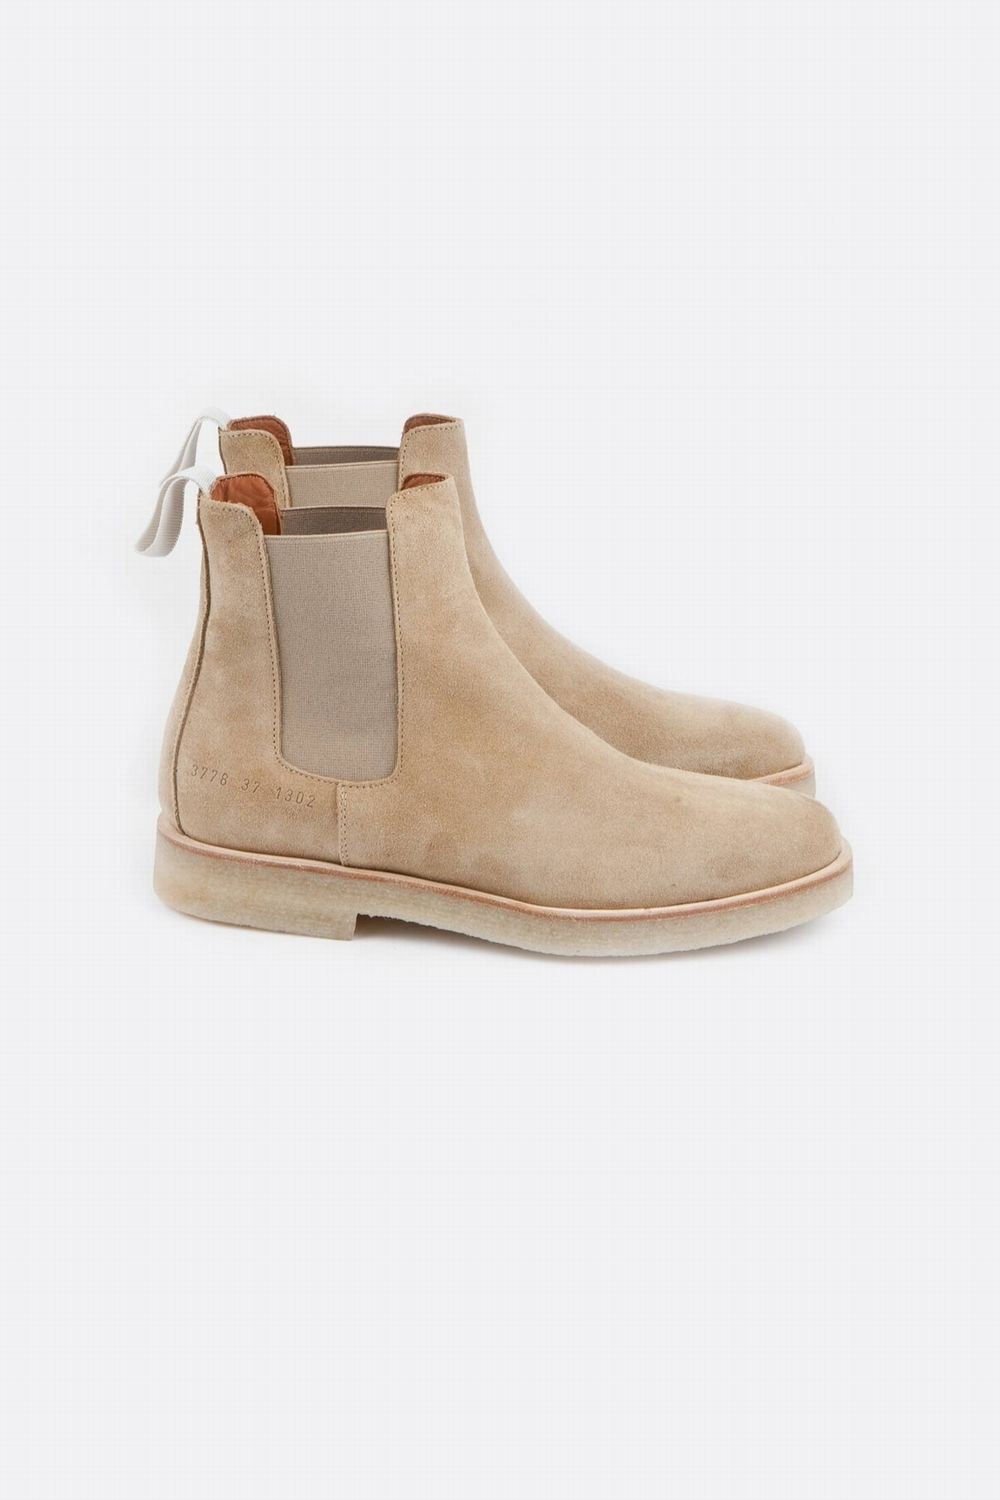 Centre Les Commercial Boots Projects Suede Common Chelsea 7qIwCn